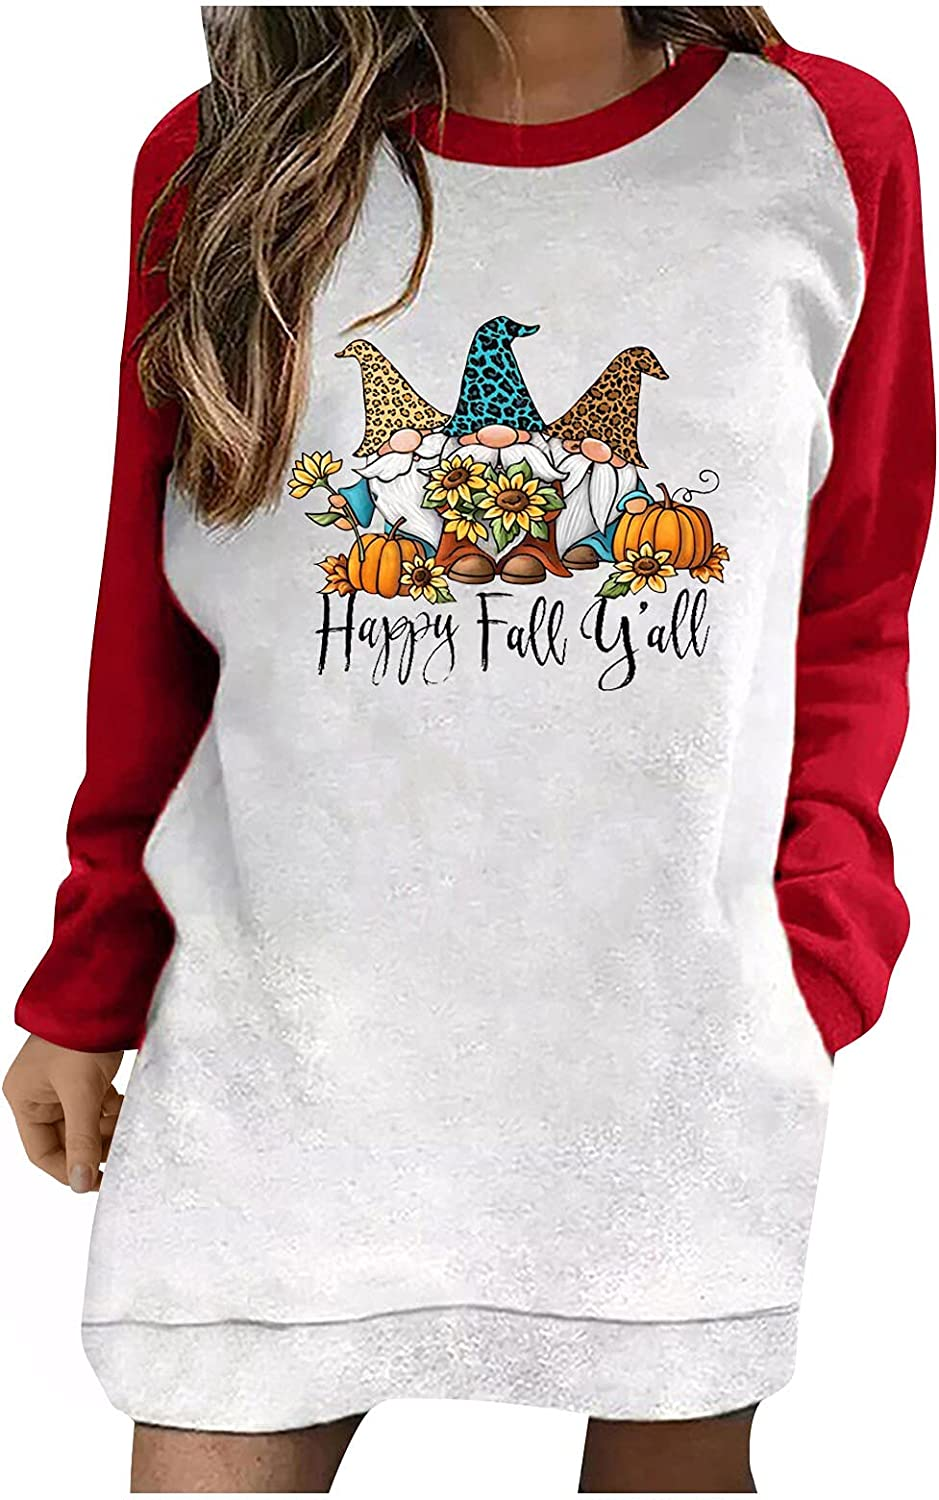 Women Halloween Casual Color Block Round-Neck Long Sleeve Graphic Pullovers Loose Tops Sweatshirts Hoodie Blouse